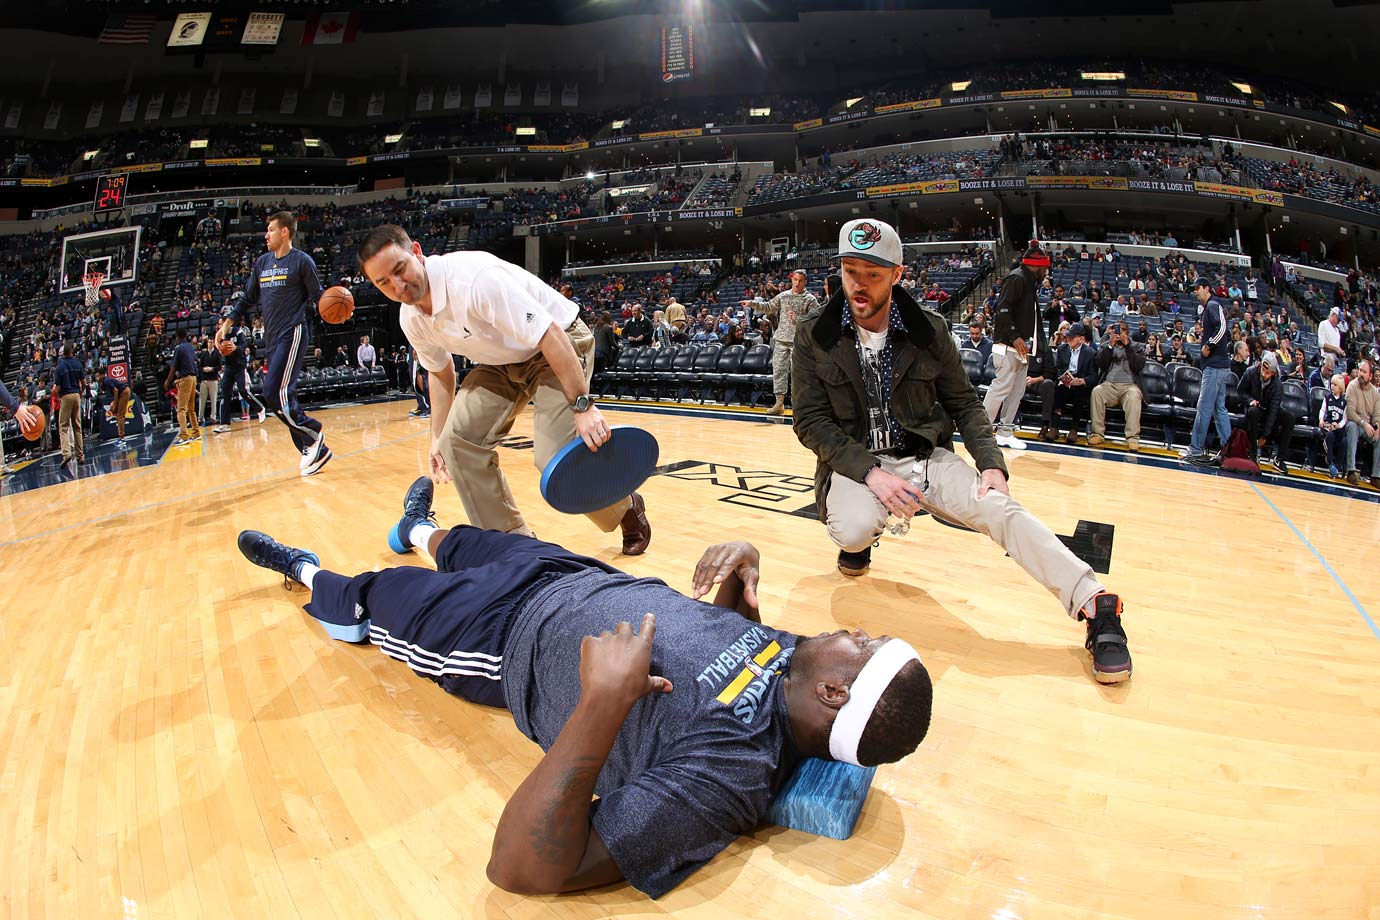 Justin Timberlake stretches alongside Zach Randolph prior to the Memphis Grizzlies game against the Miami Heat at FedExForum in Memphis, Tenn., on Dec. 7, 2014.